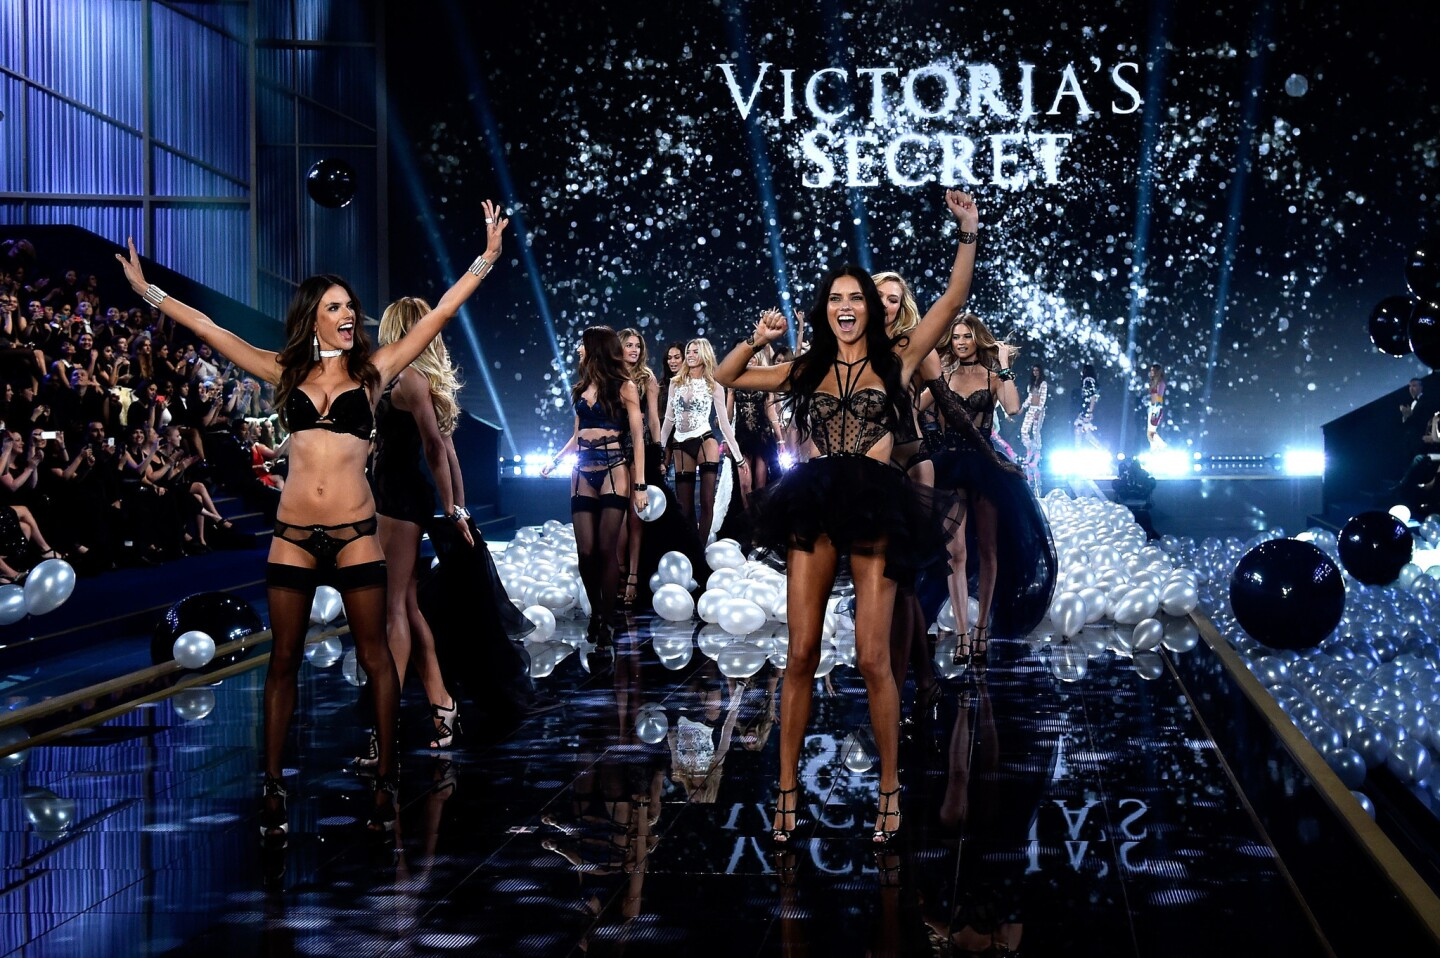 The models storm the runway at Earls Court in London at the 2014 Victoria's Secret Fashion Show.